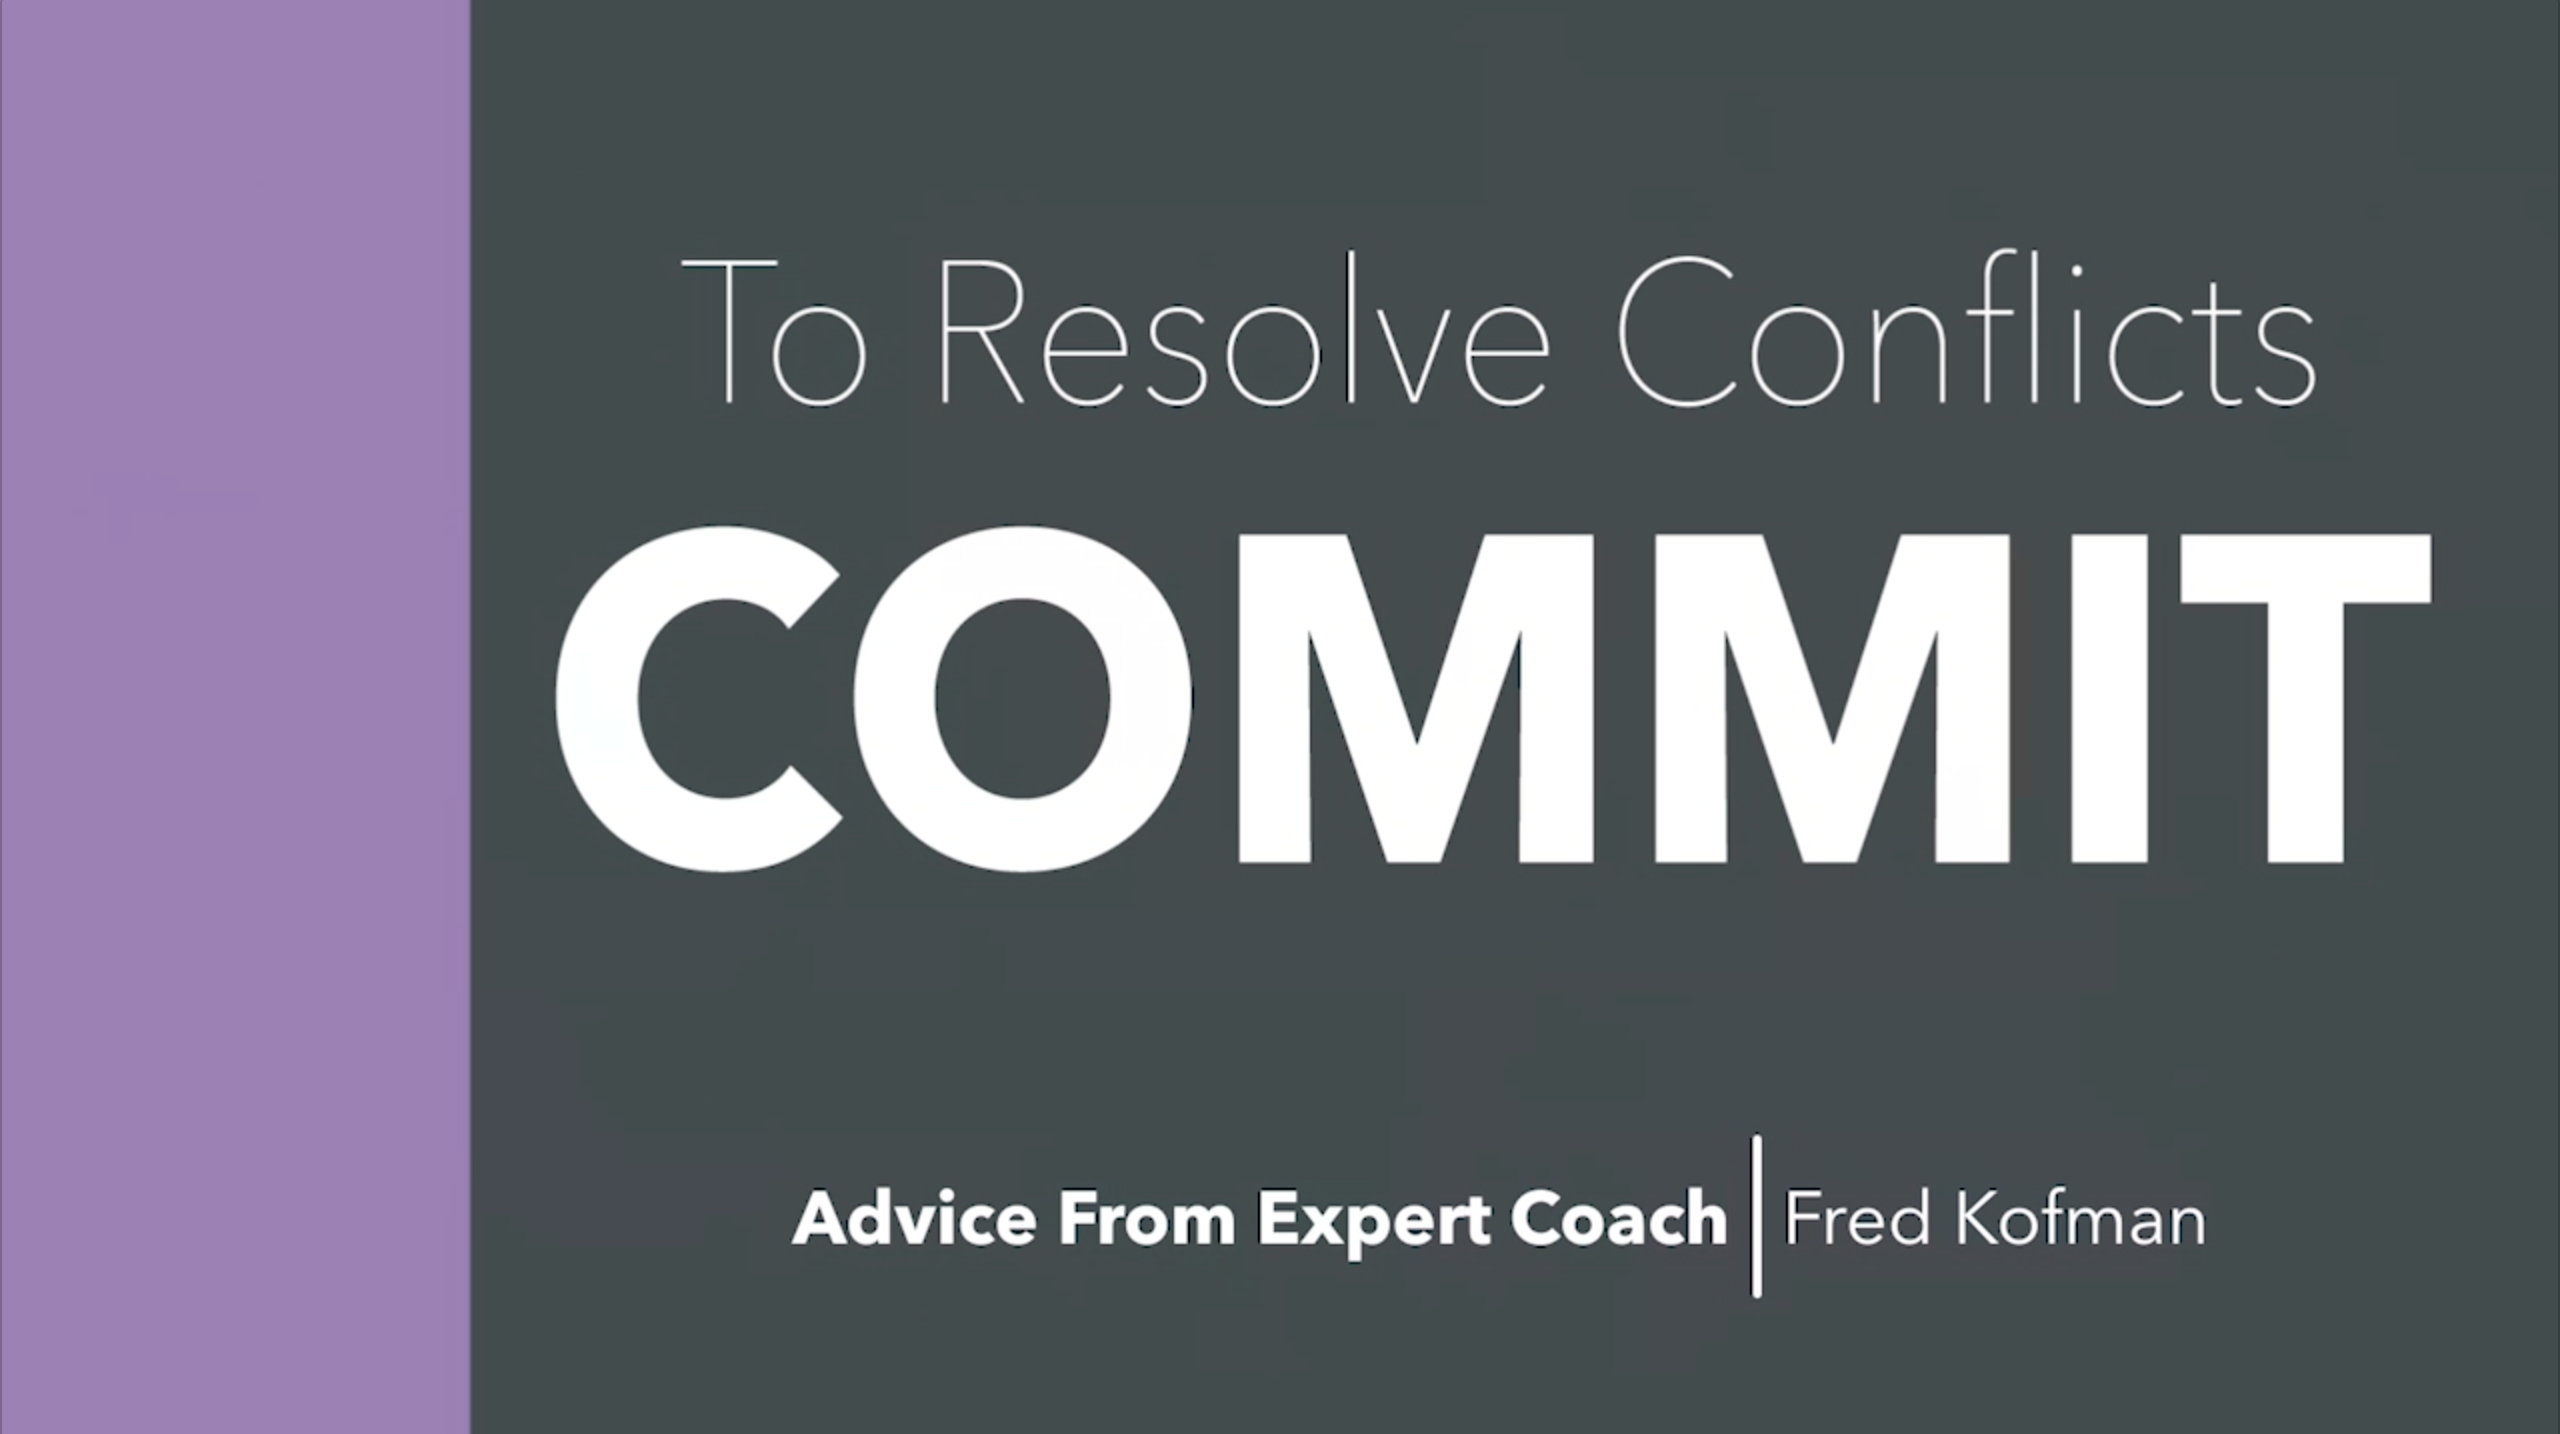 Fred Kofman on Resolving Conflict: Commit